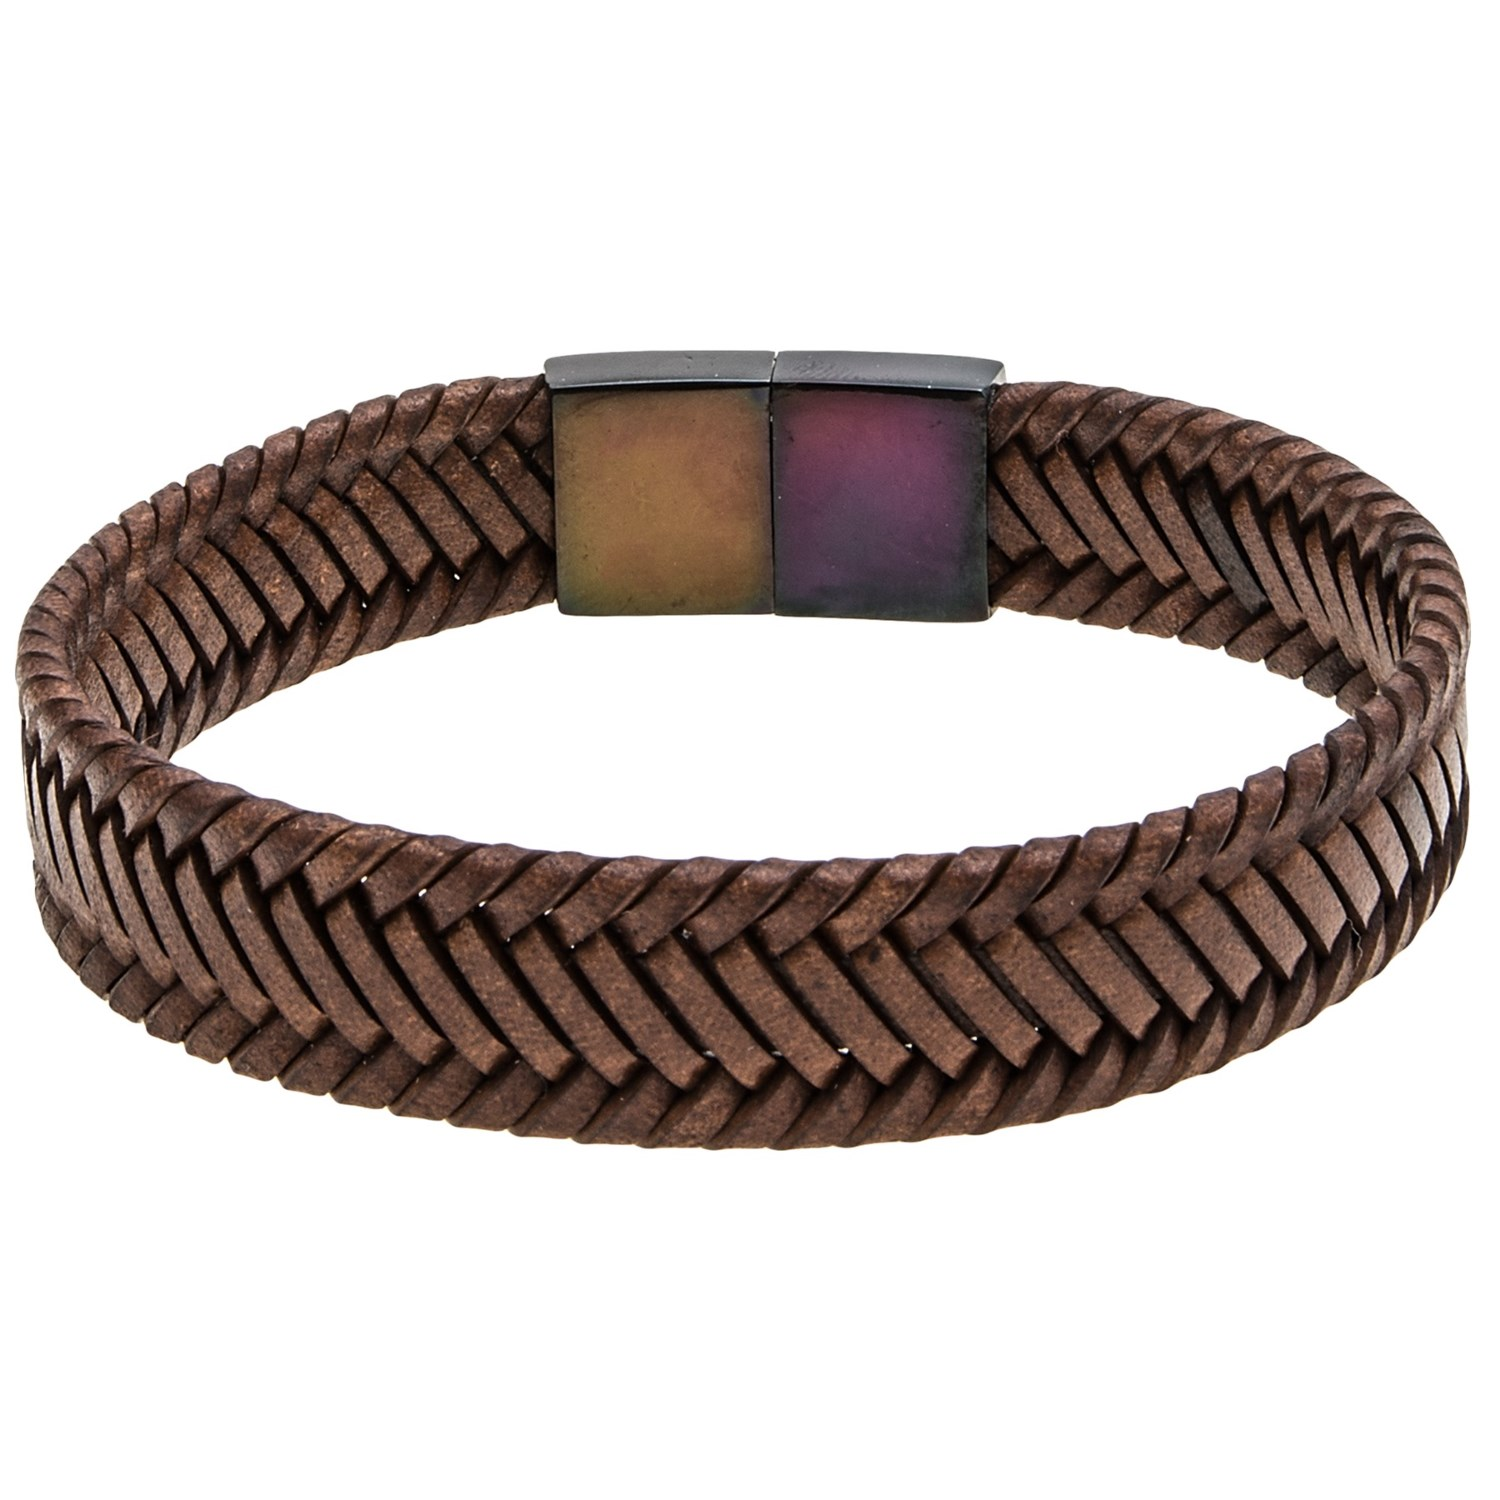 leather bracelet for men - photo #5